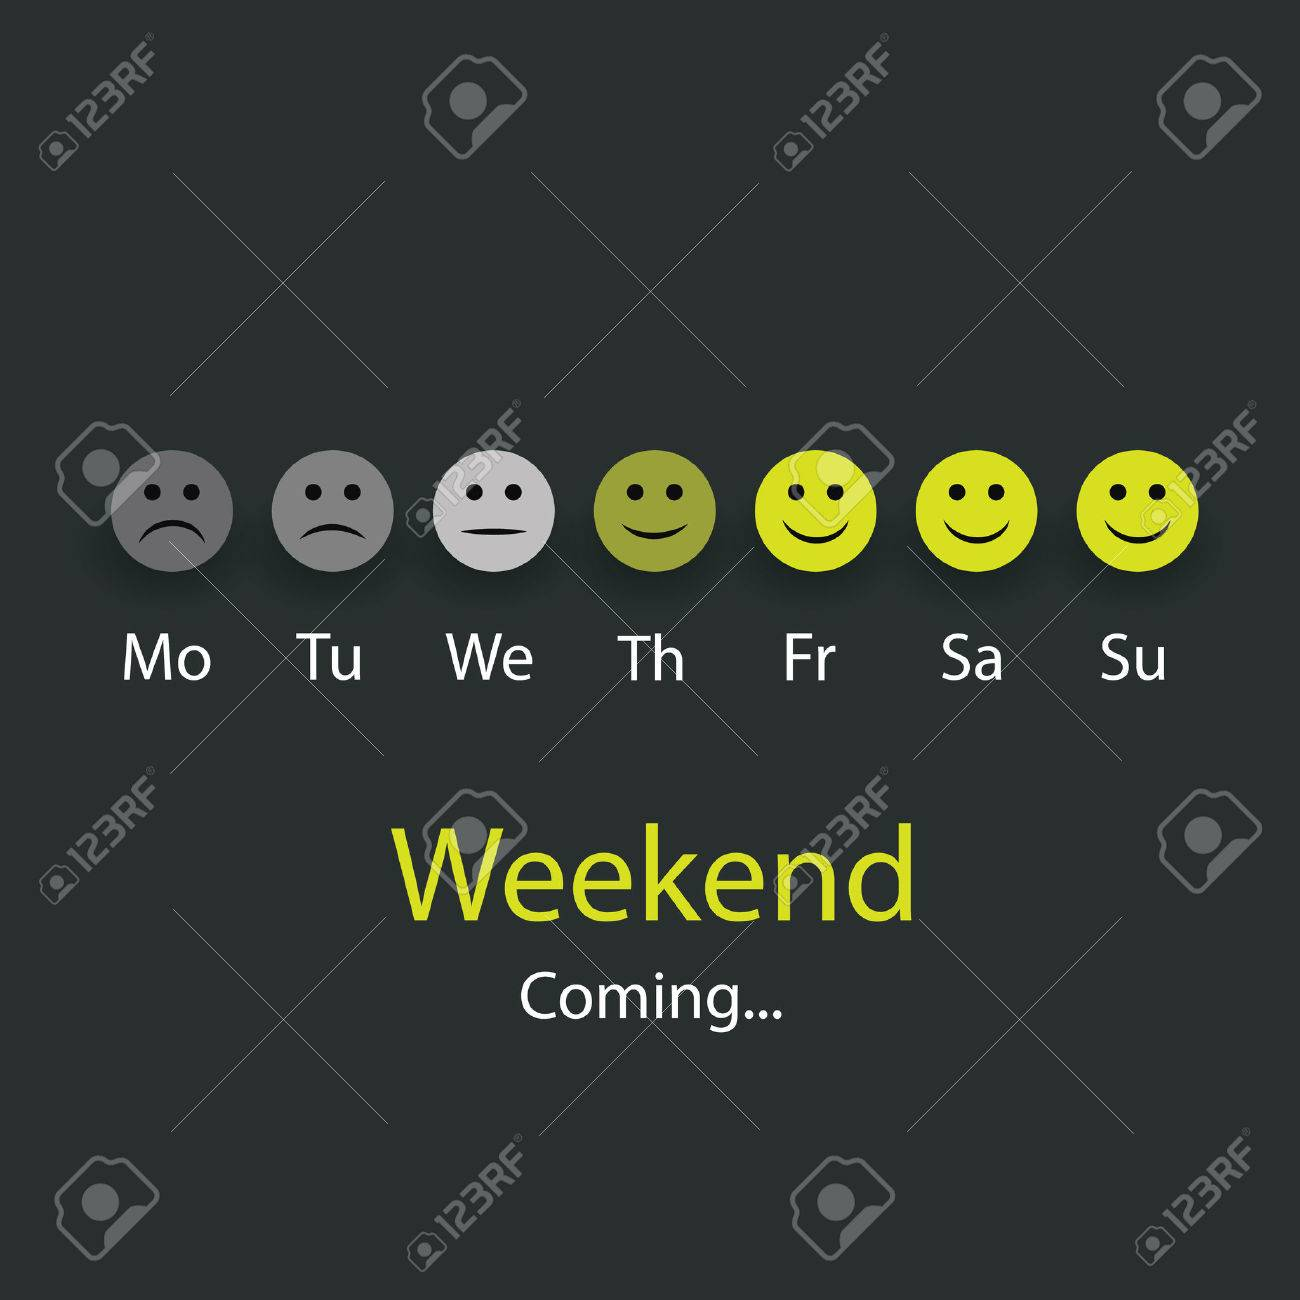 Weekends Coming - Design Concept with Smiling Faces - 25839175